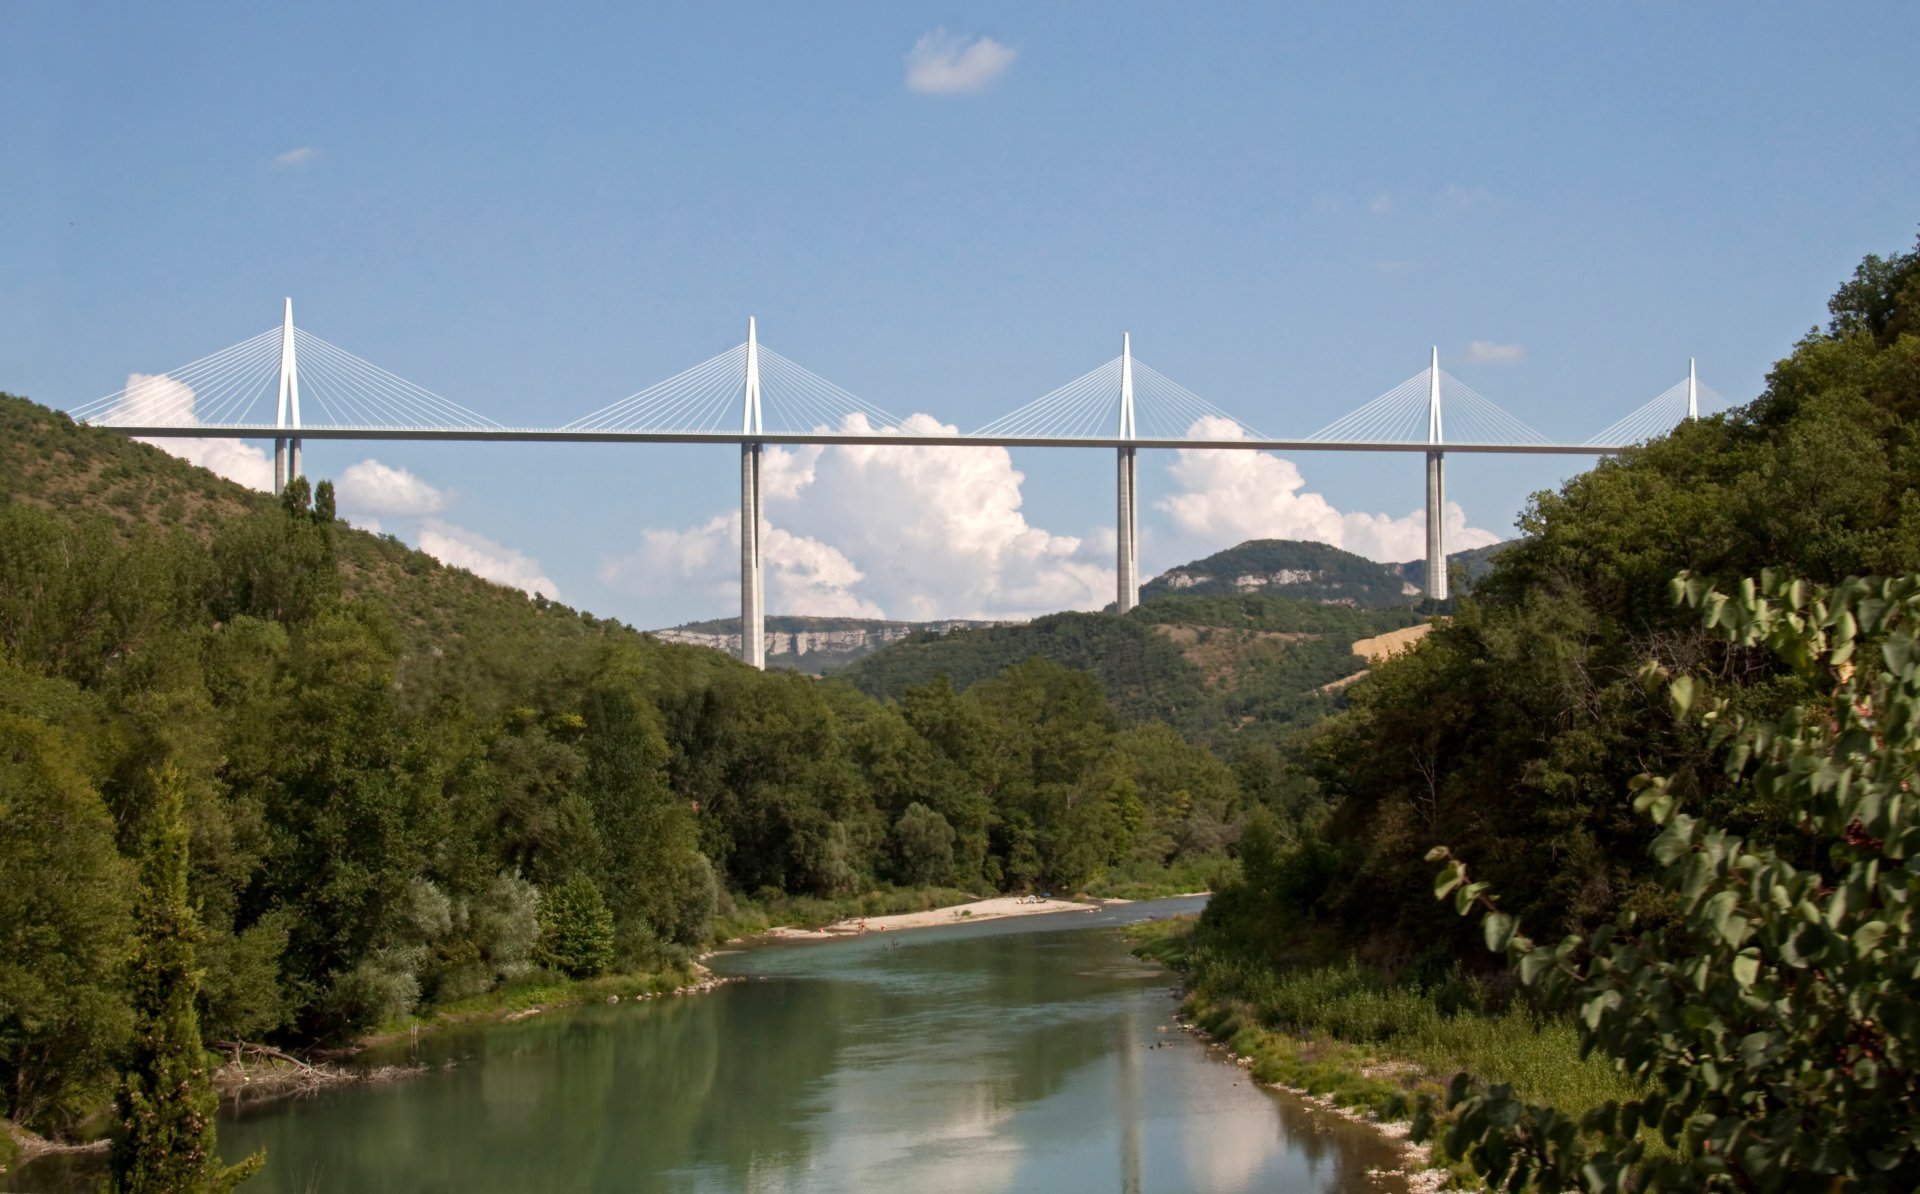 Millau Viaduct 4k Ultra HD Wallpaper and Background ...